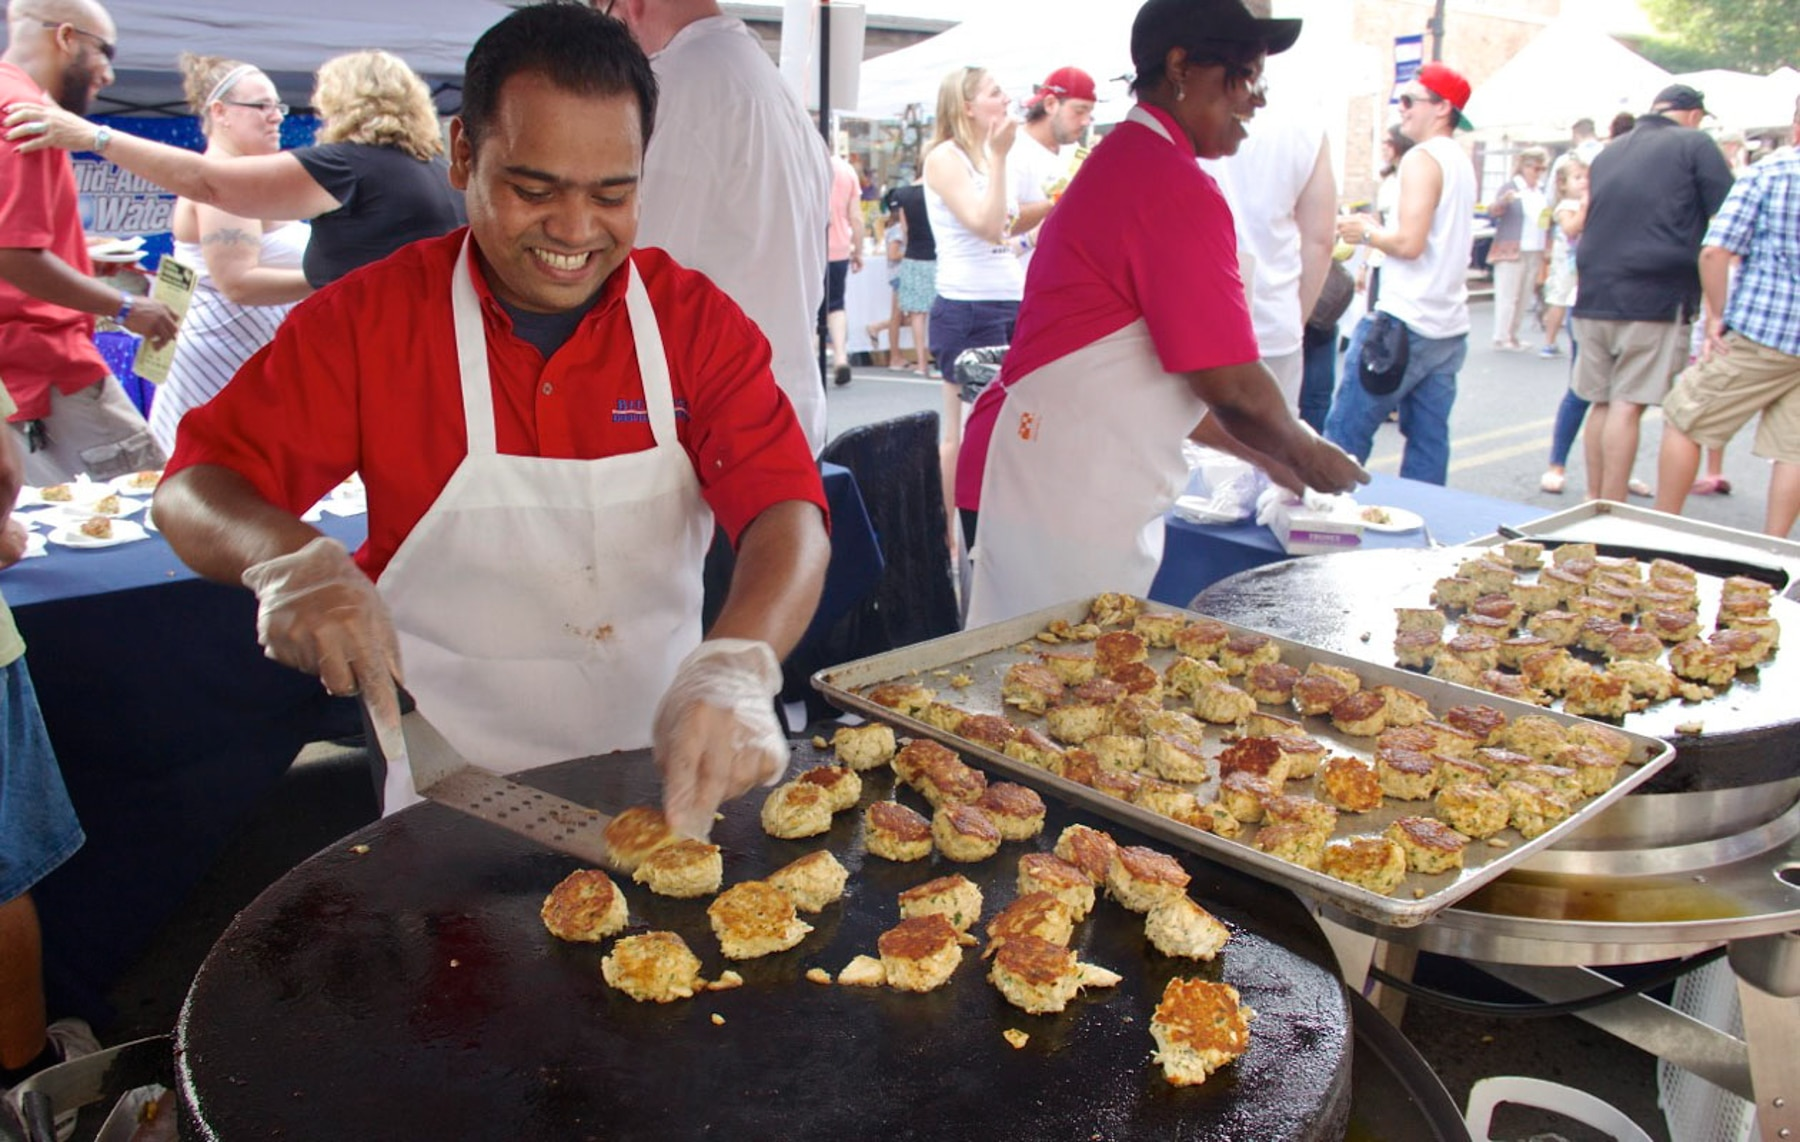 Man preparing crab cakes on large griddle (Cambridge Main Street)